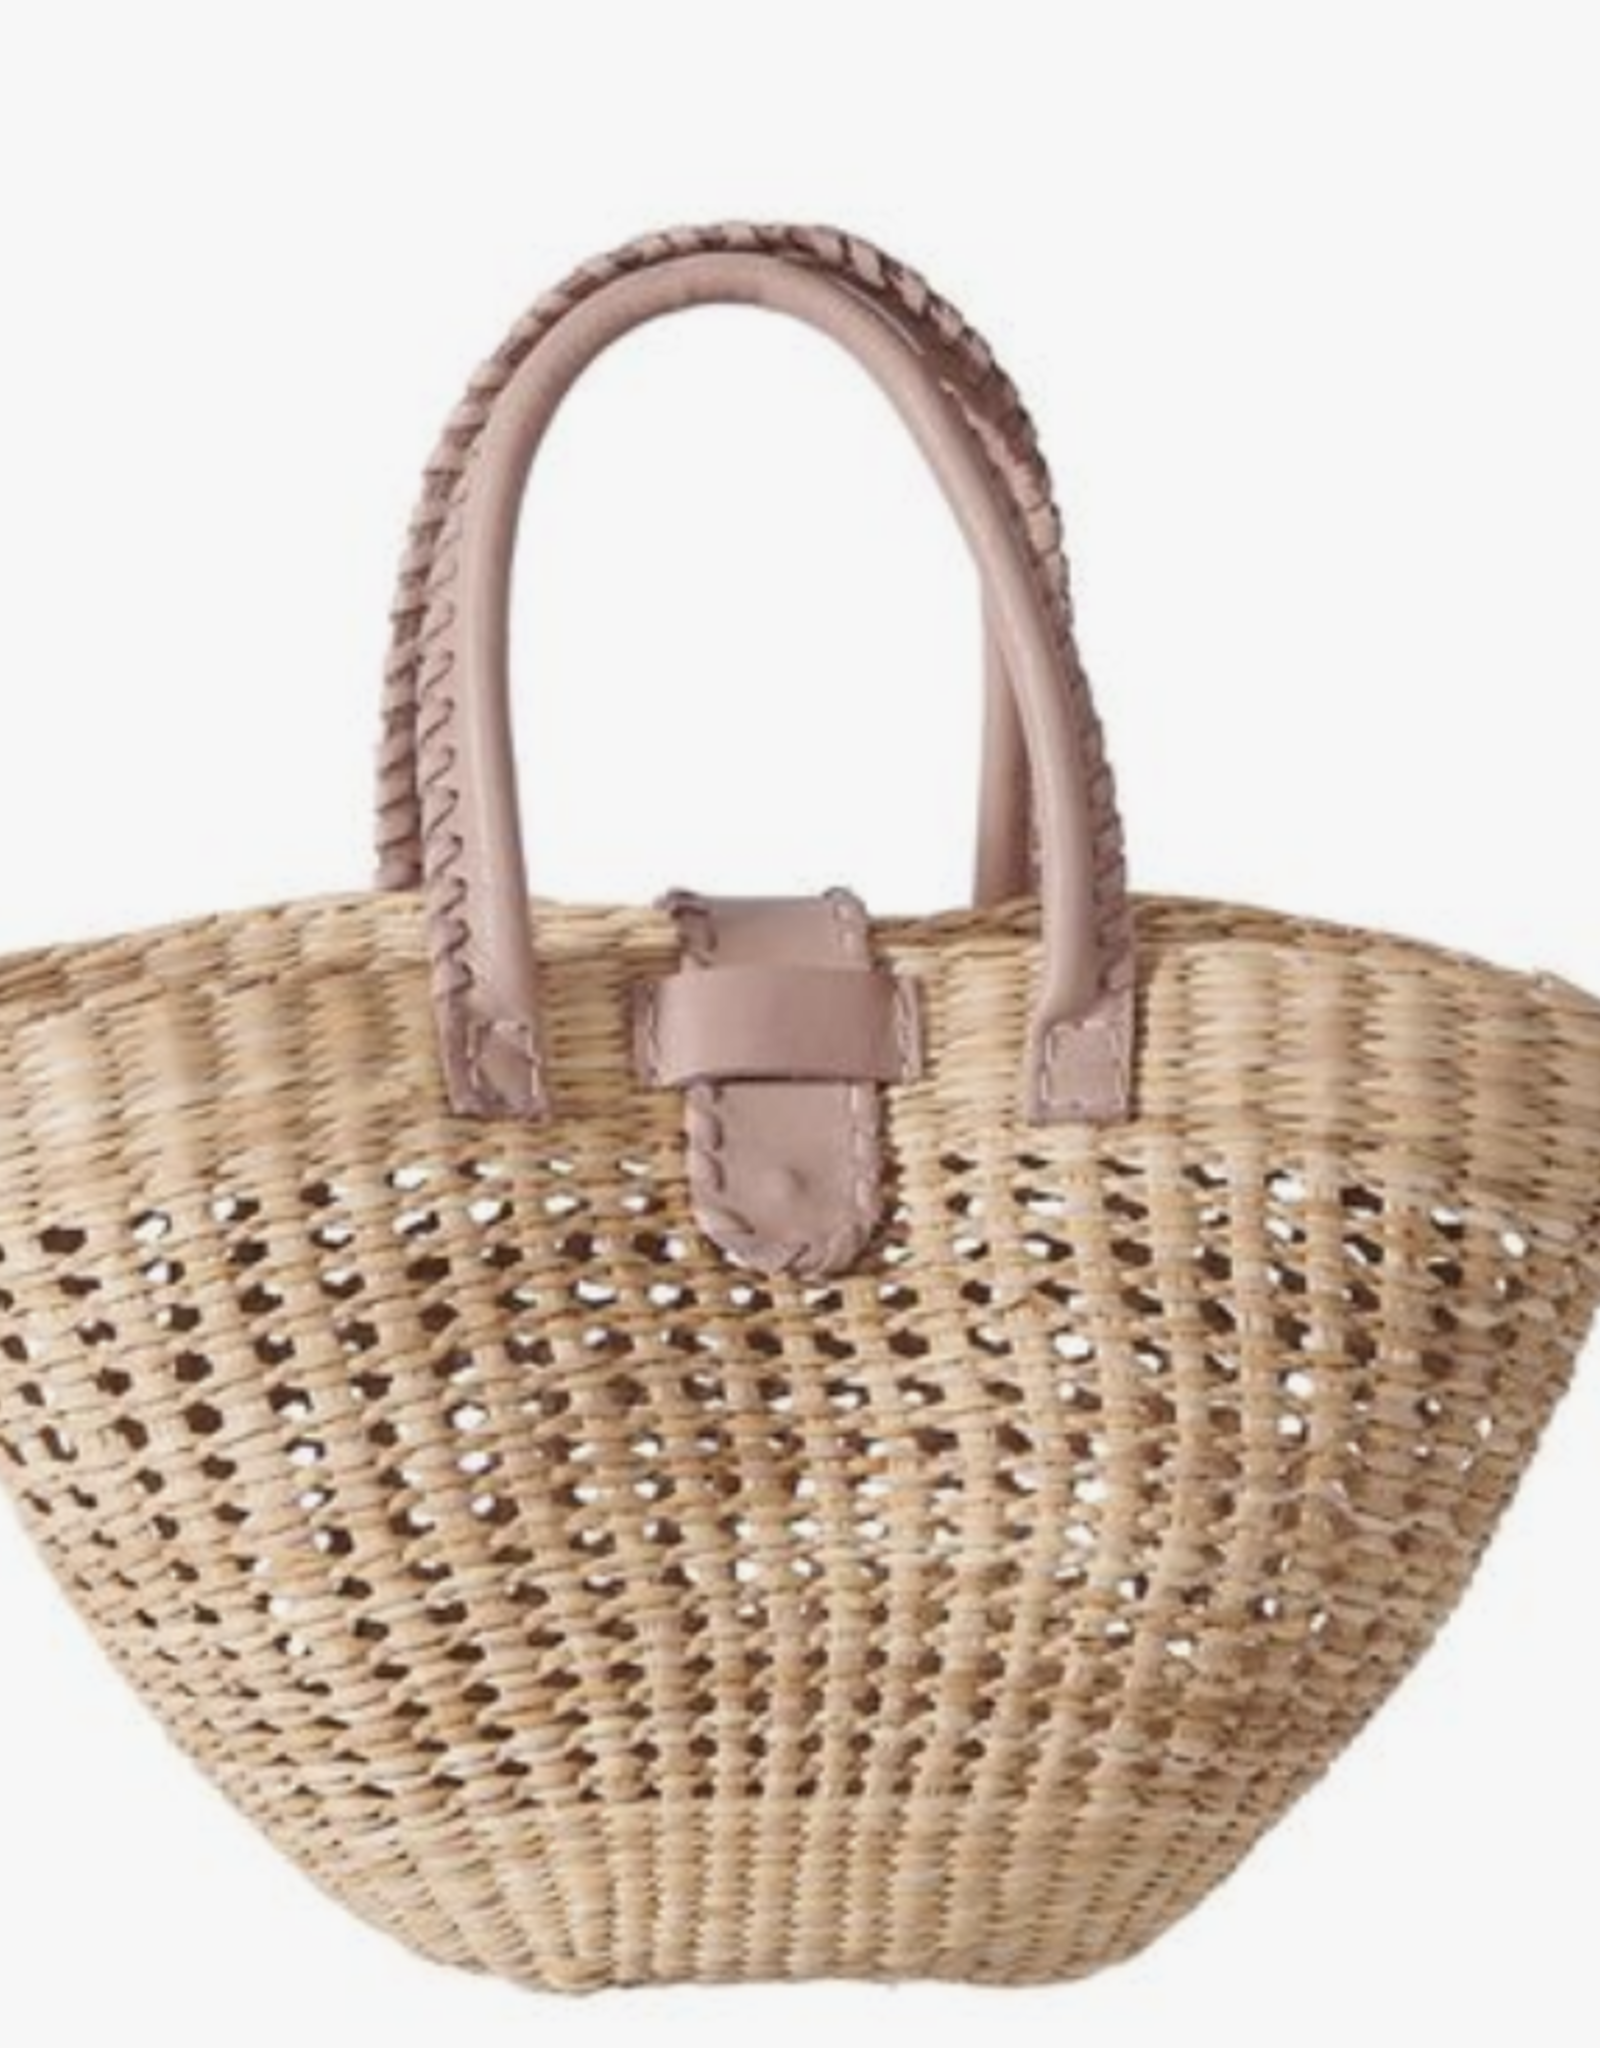 Nannacay Natural Sandalo Seychelles Bag